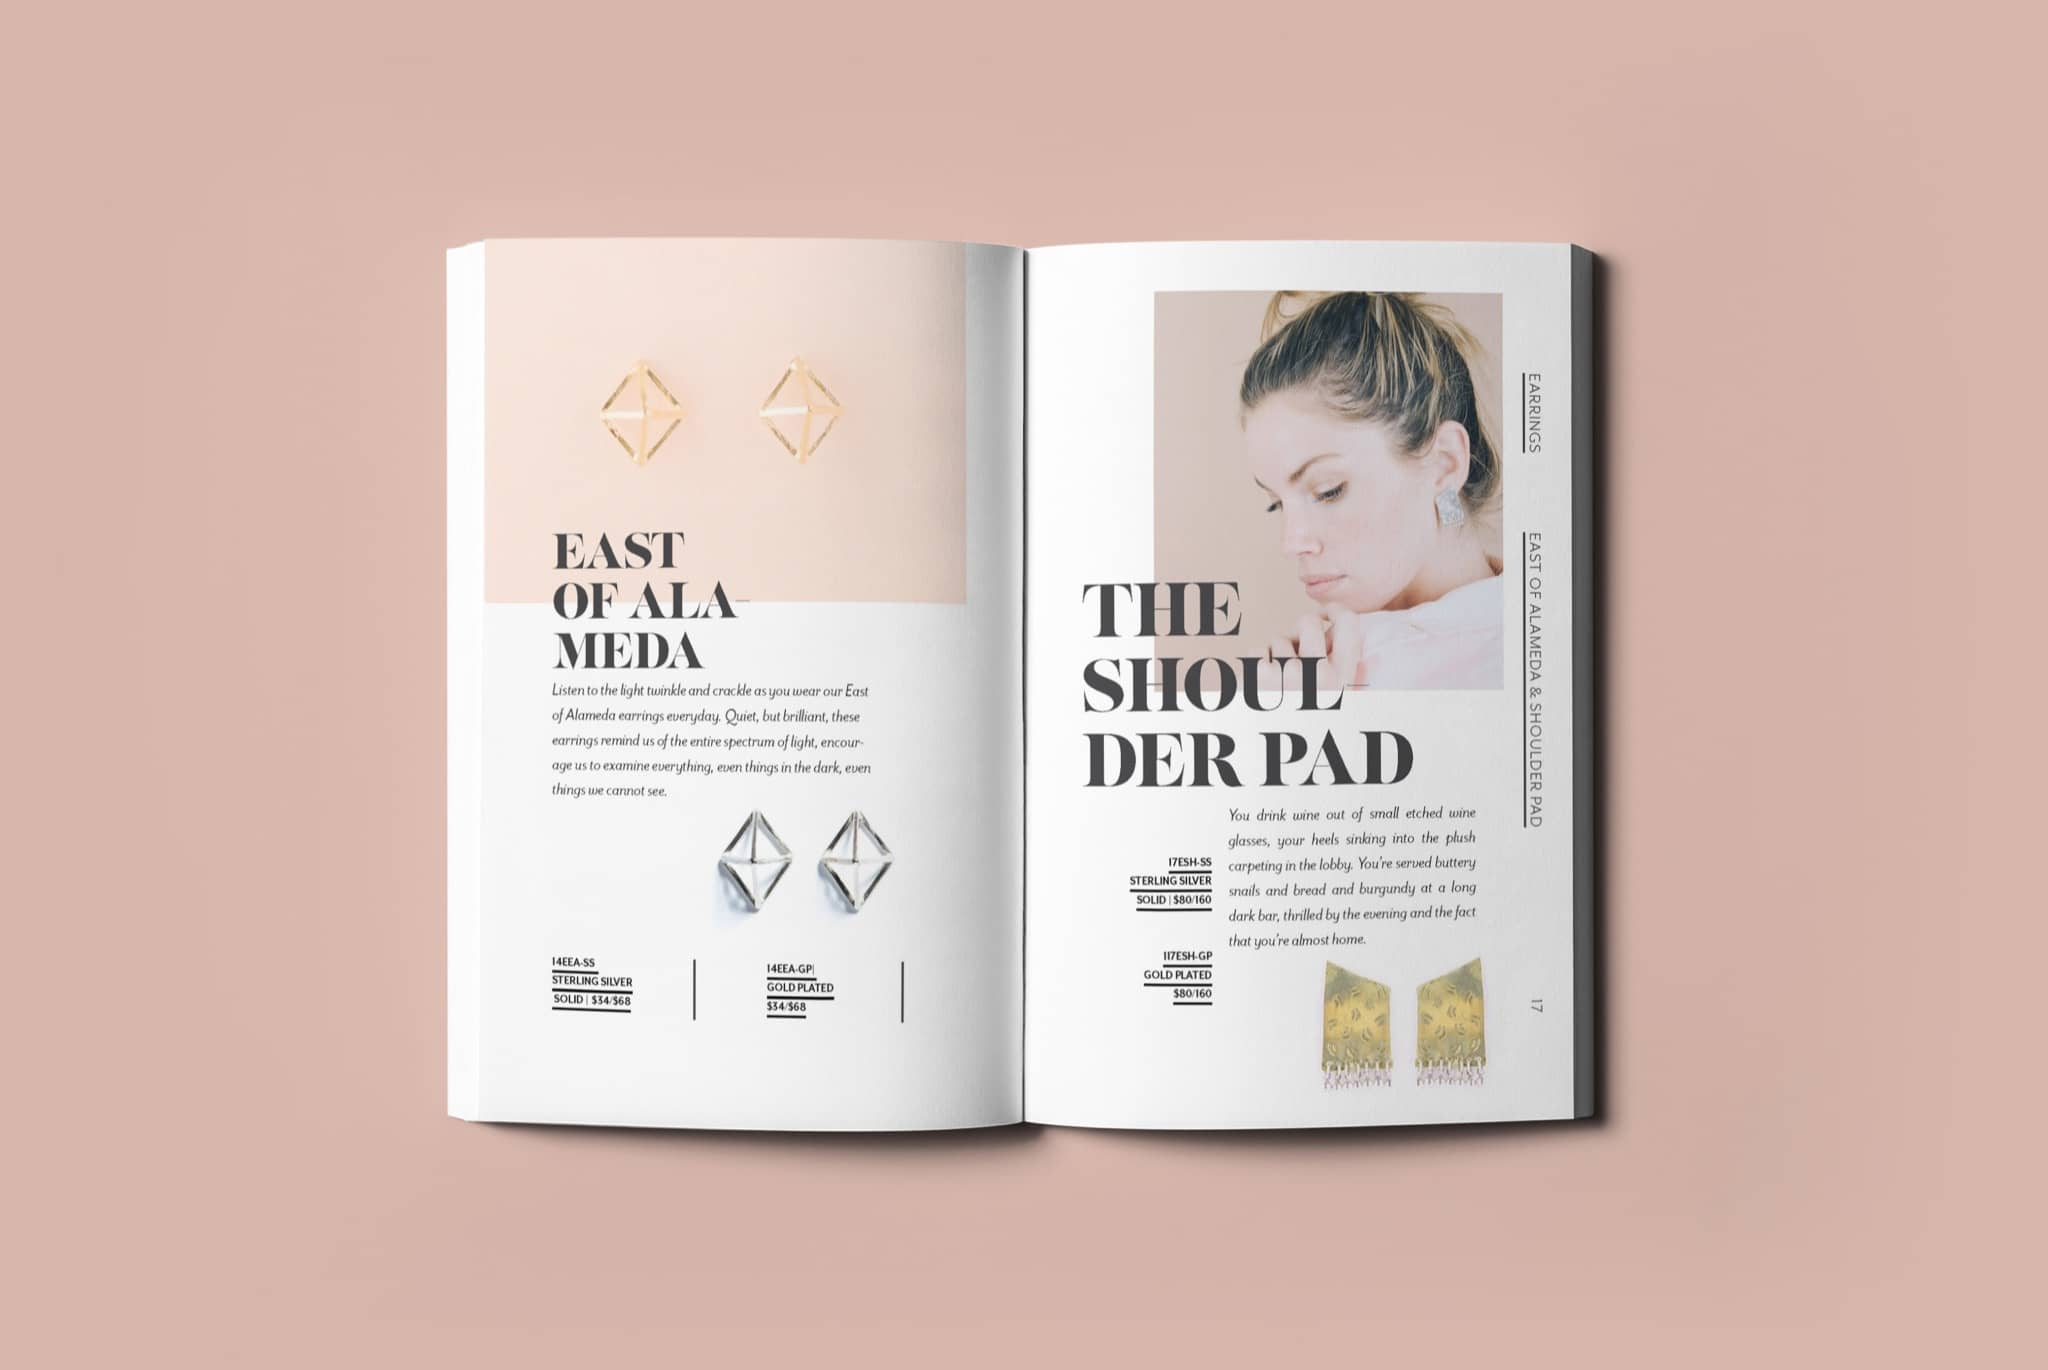 Jewelry Catalog Design for I LIKE IT HERE CLUB by Brand Engine